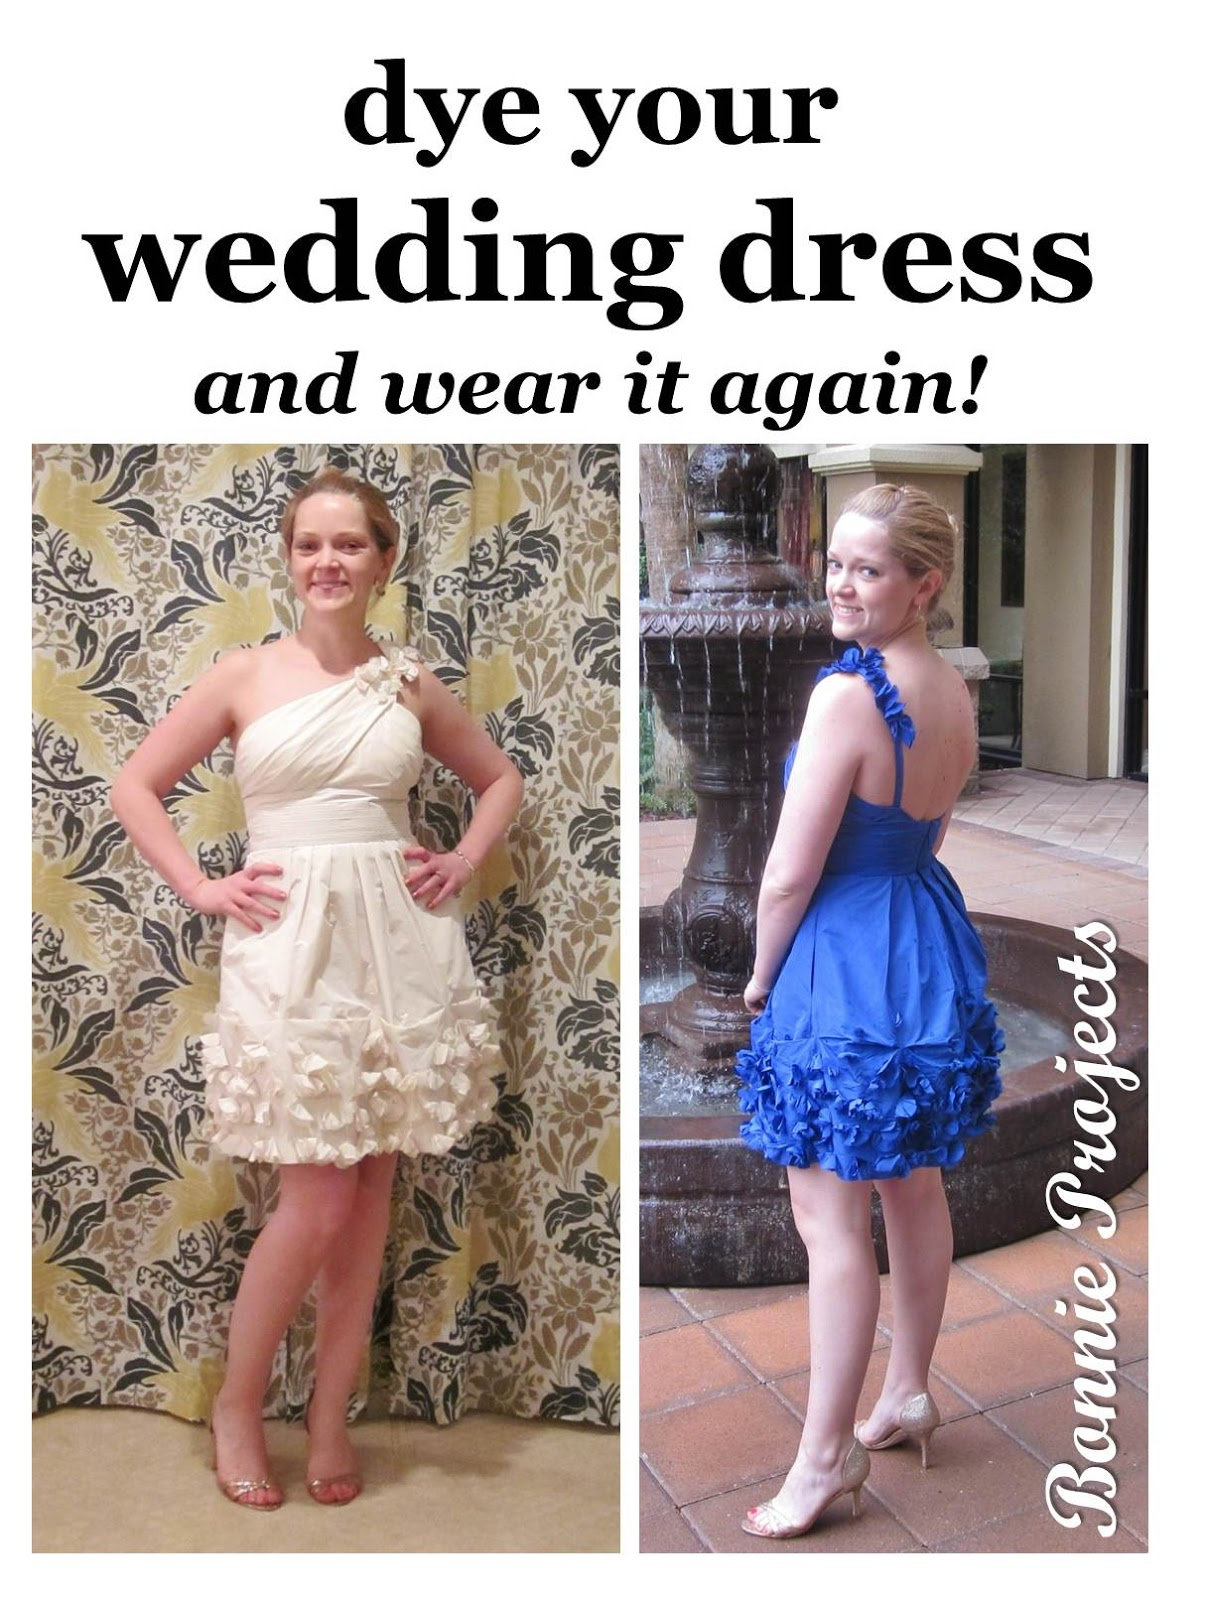 So There You Go A Successfully Dyed Polyester Wedding Reception Dress Wearable For Years To Come All Sorts Of Events